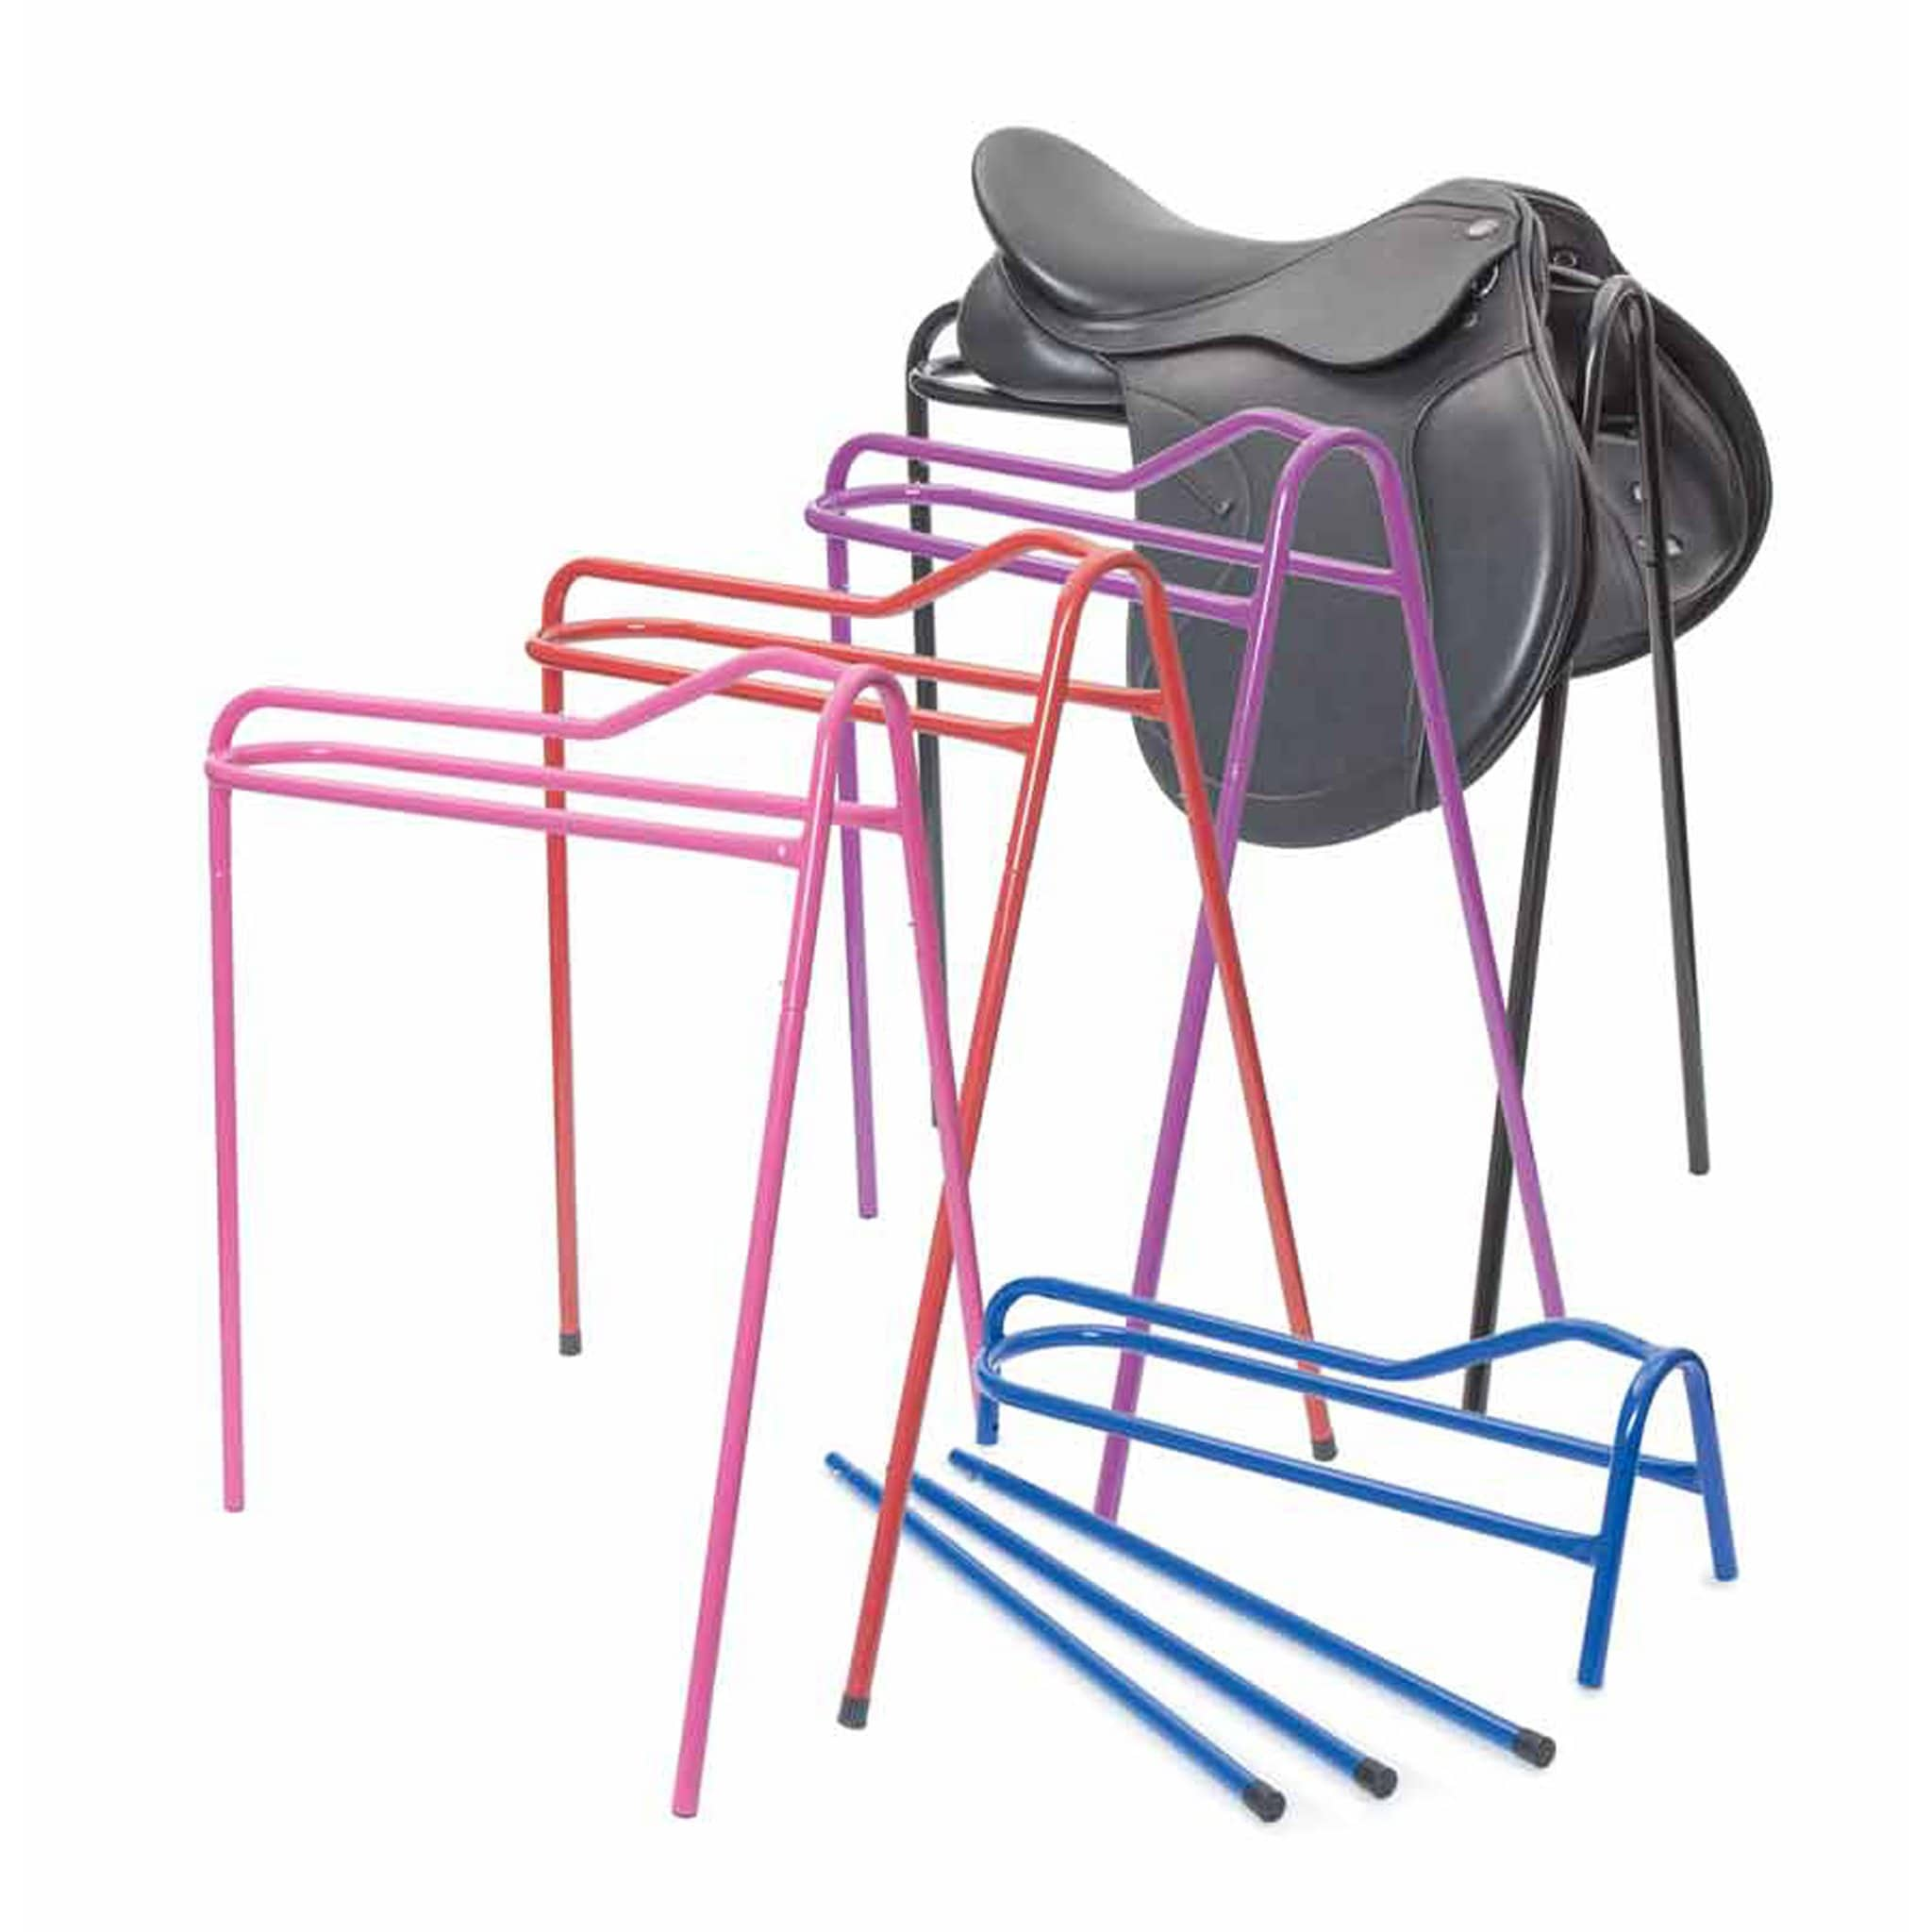 Shires Collapsible Saddle Stand 978c in Black With Saddle, In Red, Purple and Pink, and in Blue With Legs Removed